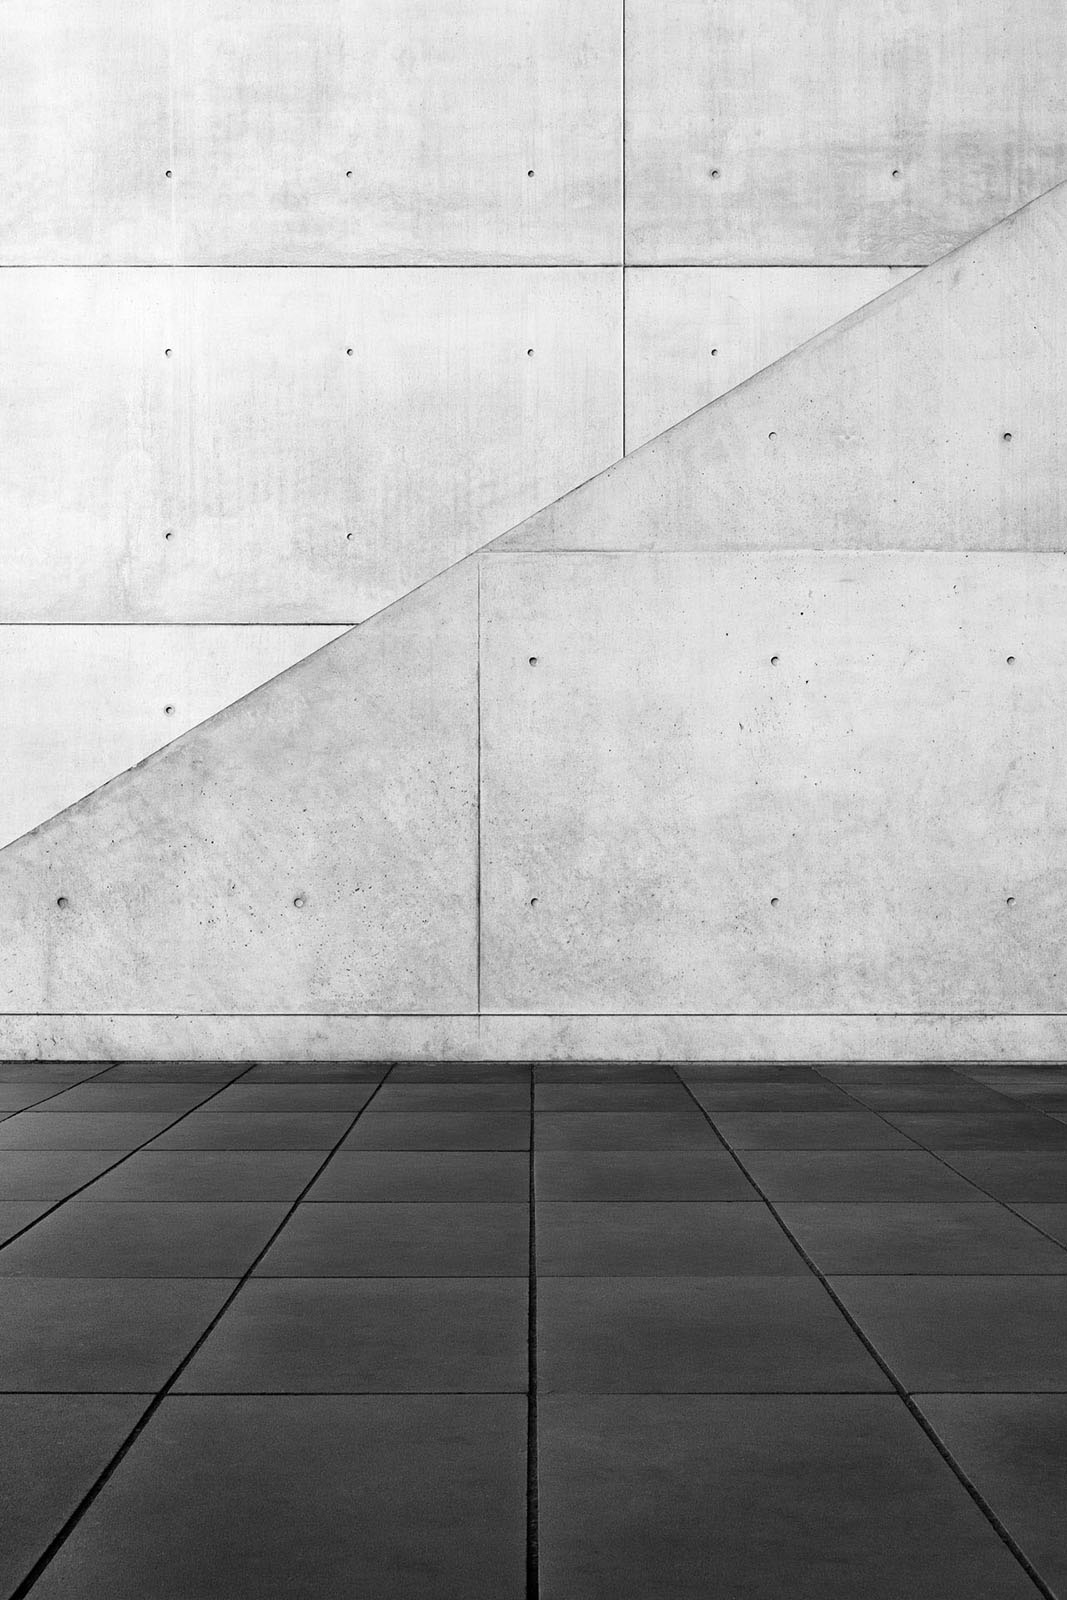 Pinakothek der Moderne, Munich, Germany - Architect: Stephan Braunfels - Game of Shapes - Black & White Fine Art Architecture Series